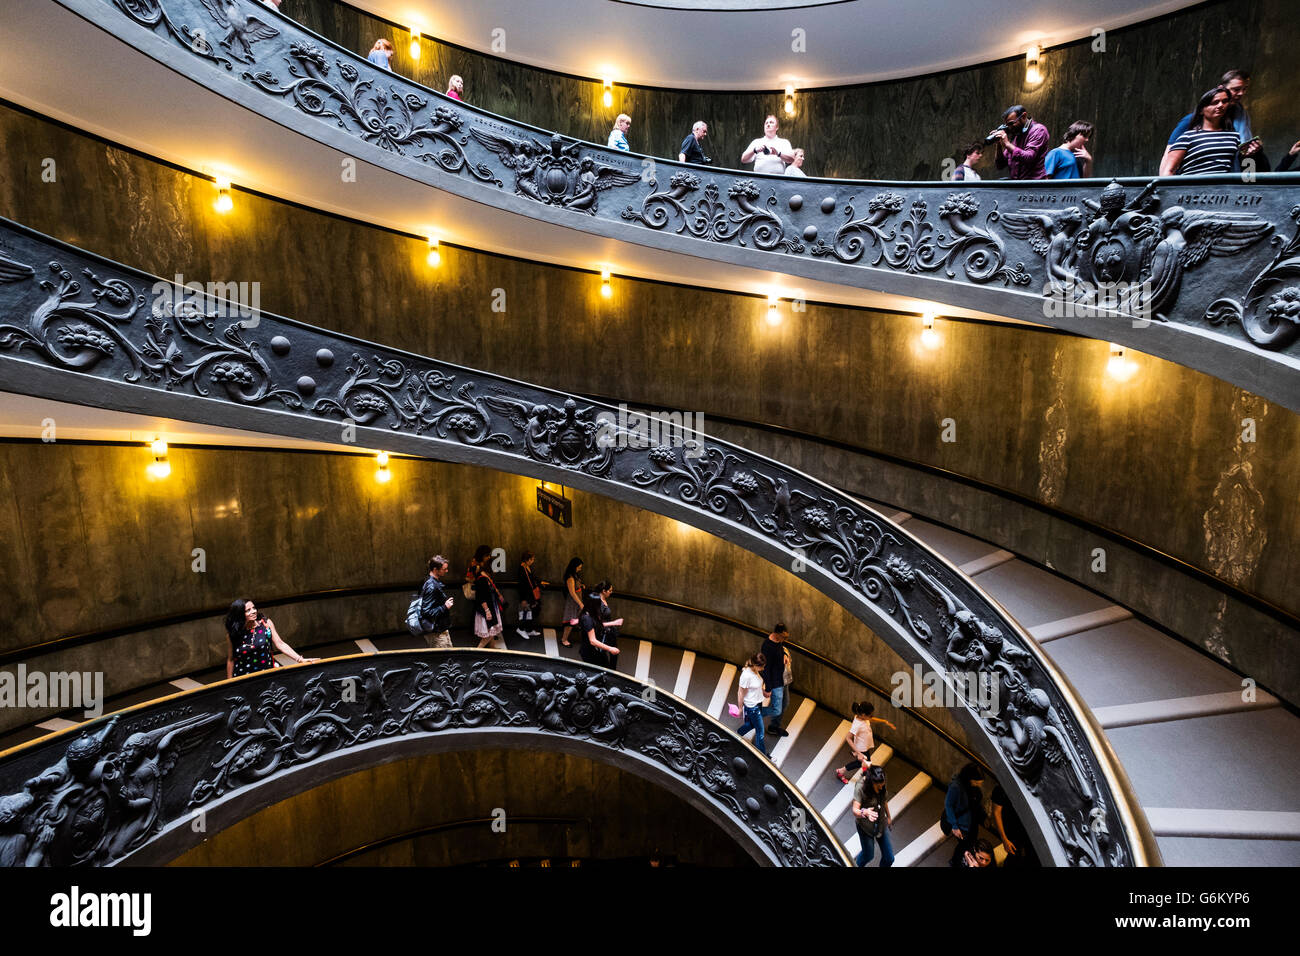 Visitors descend the famous spiral staircase in the  Vatican Museum in Rome, Italy - Stock Image